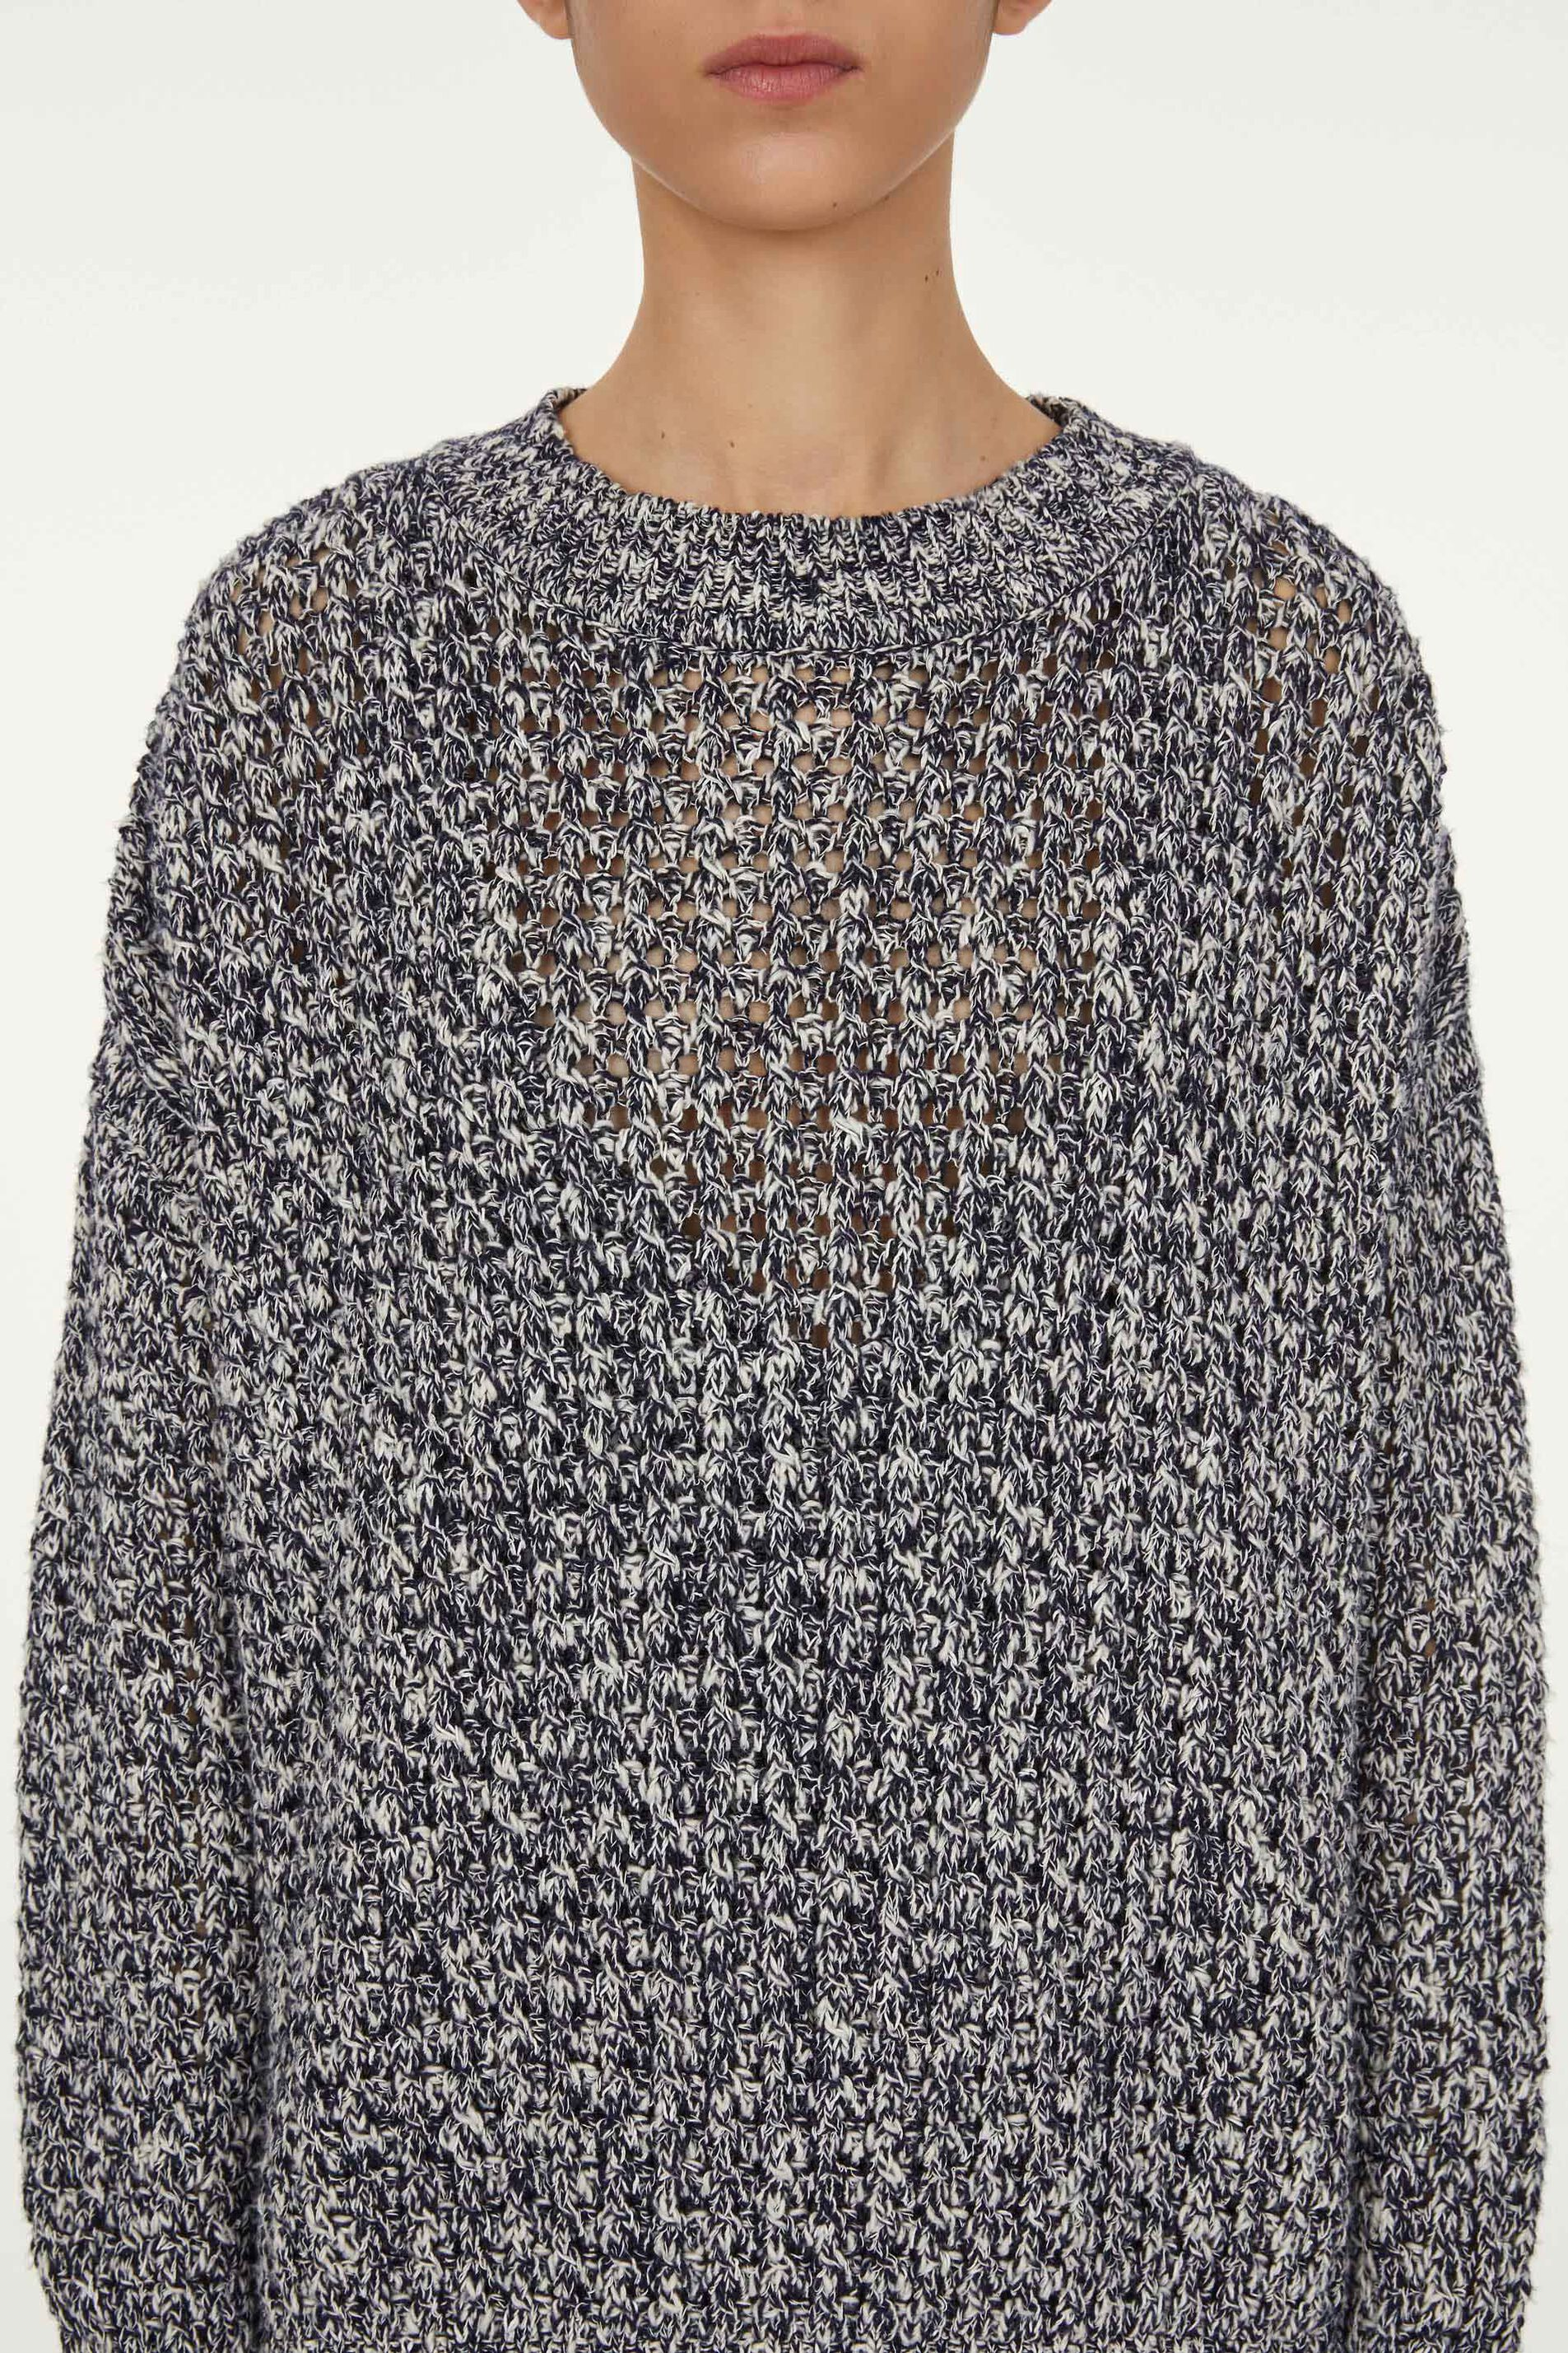 Oversize Pullover, blue, large